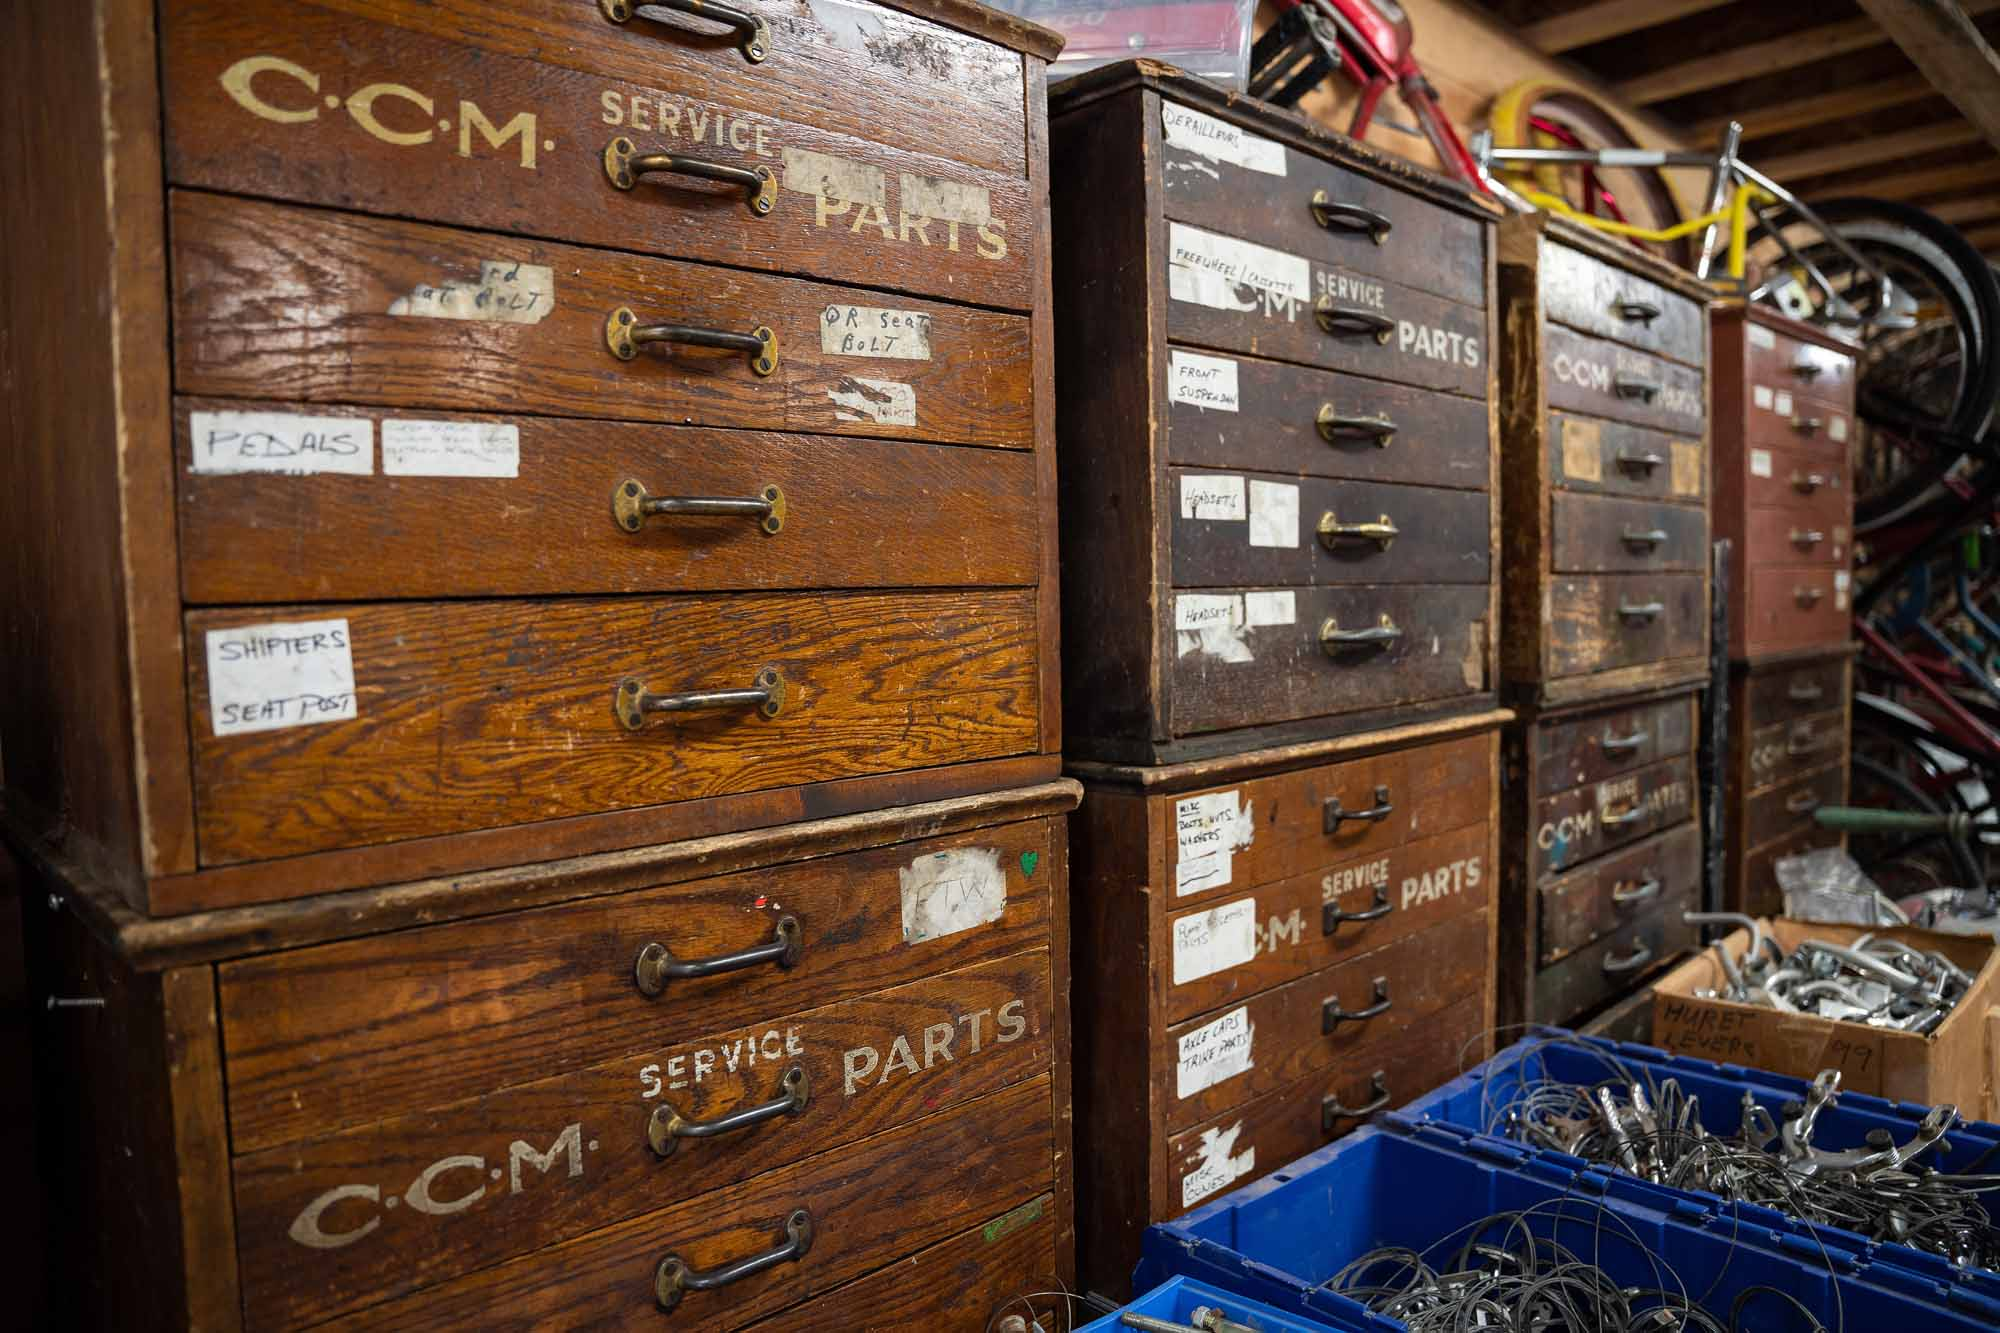 The-King-of-Bikes-The-Story-of-an-Obsession-CCM-cabinets-Colin-Field-photo